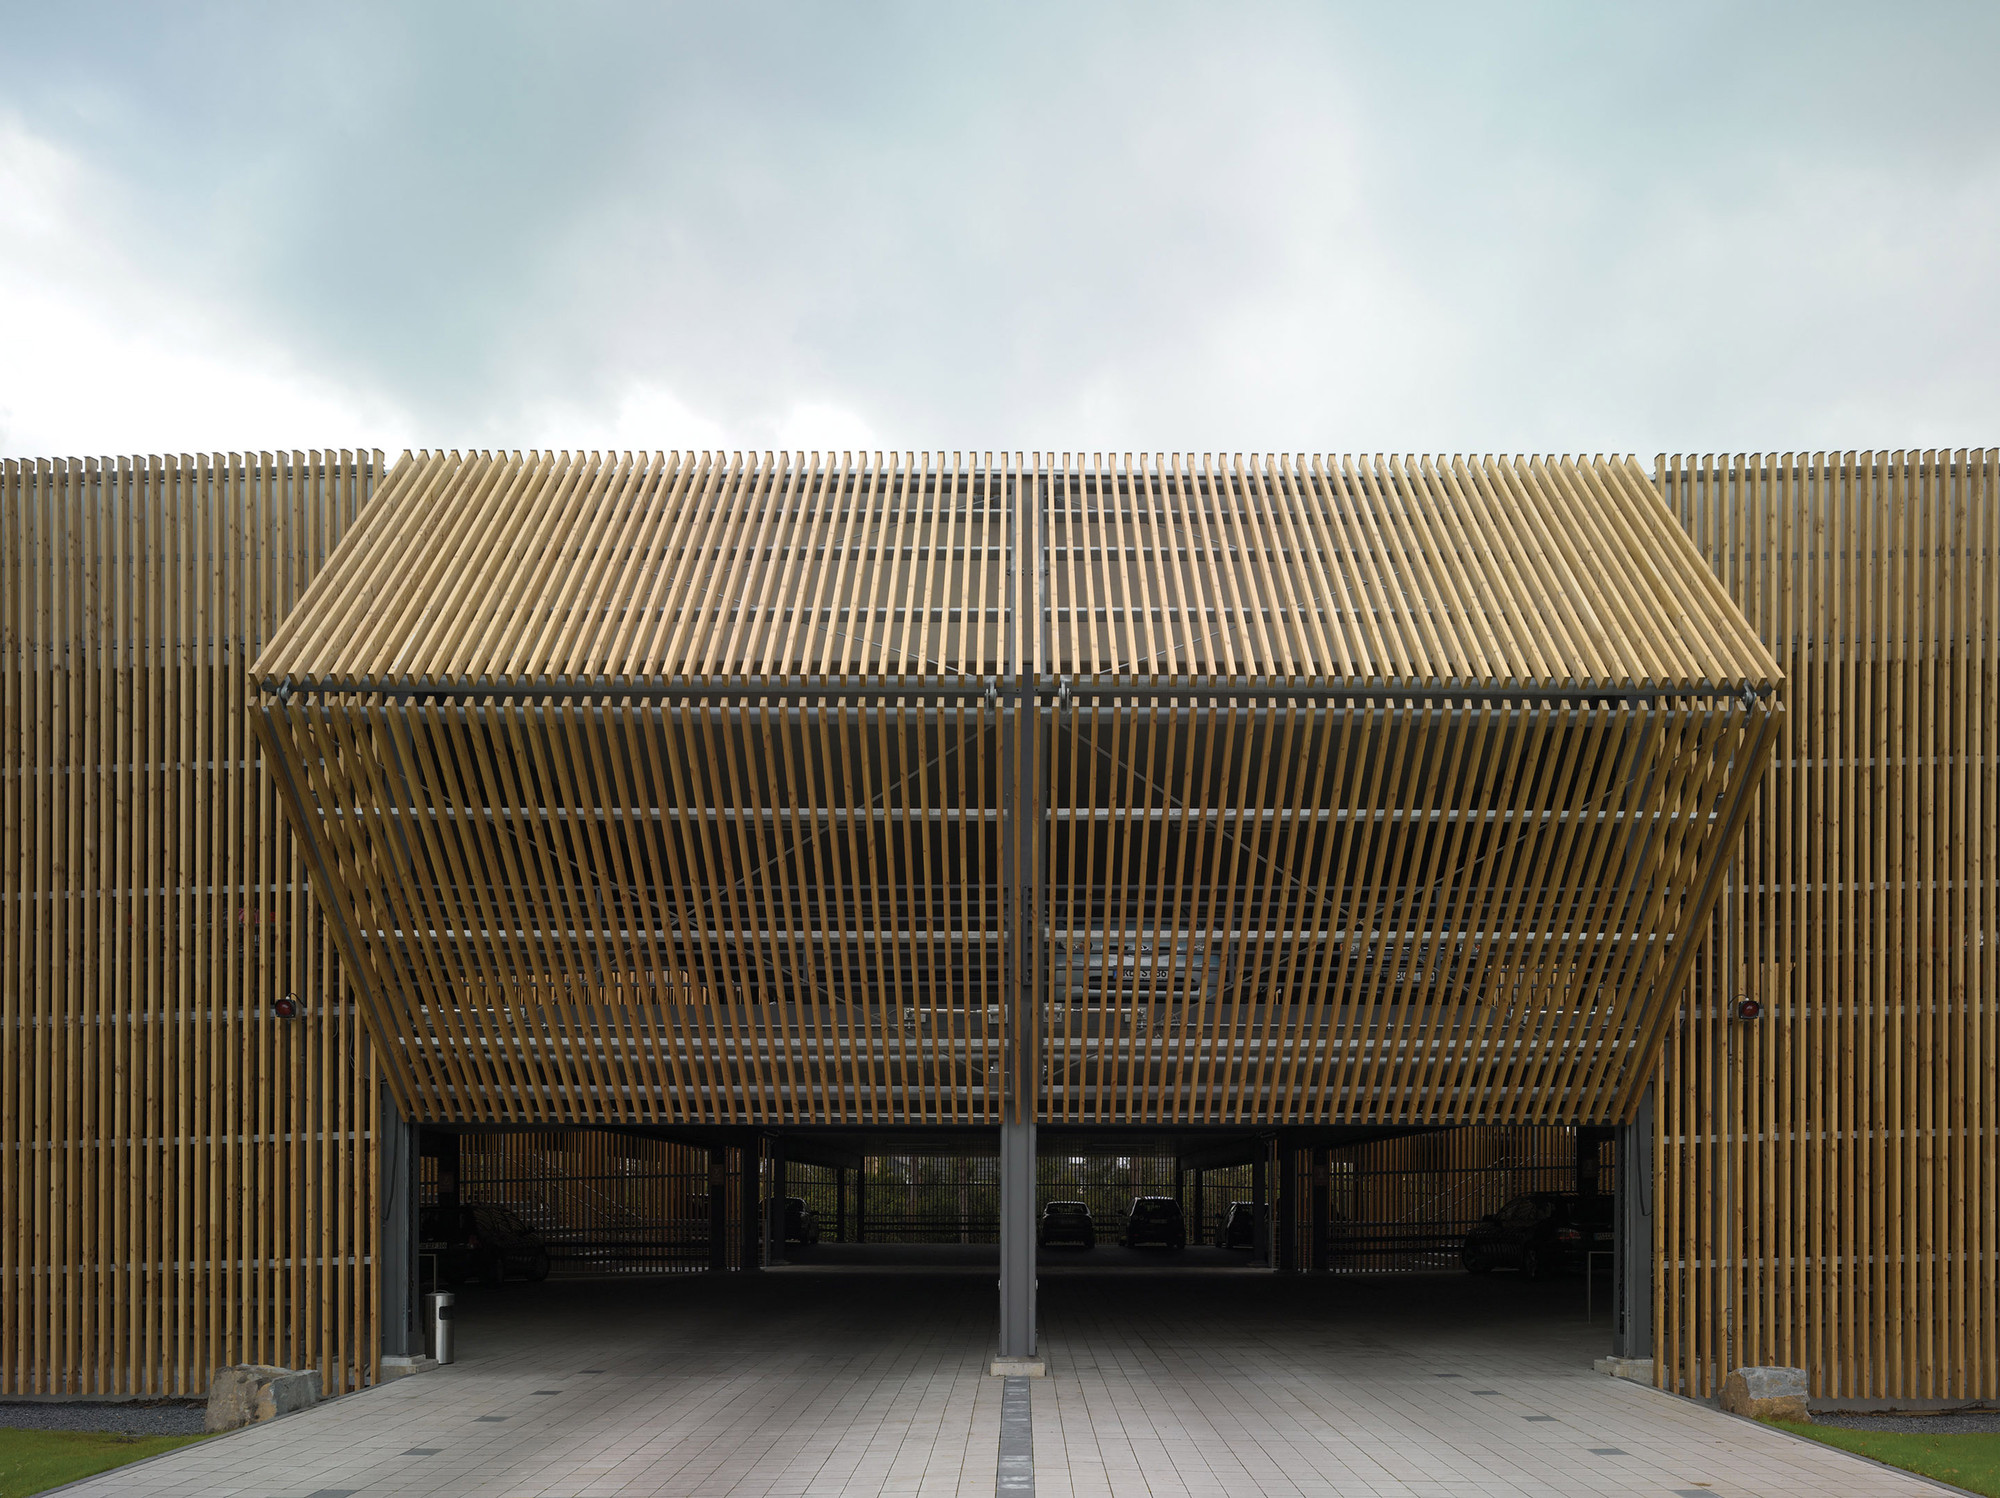 Estacionamento da sede Ernsting / Birk Heilmeyer und Frenzel Architekten, © Christian Richters